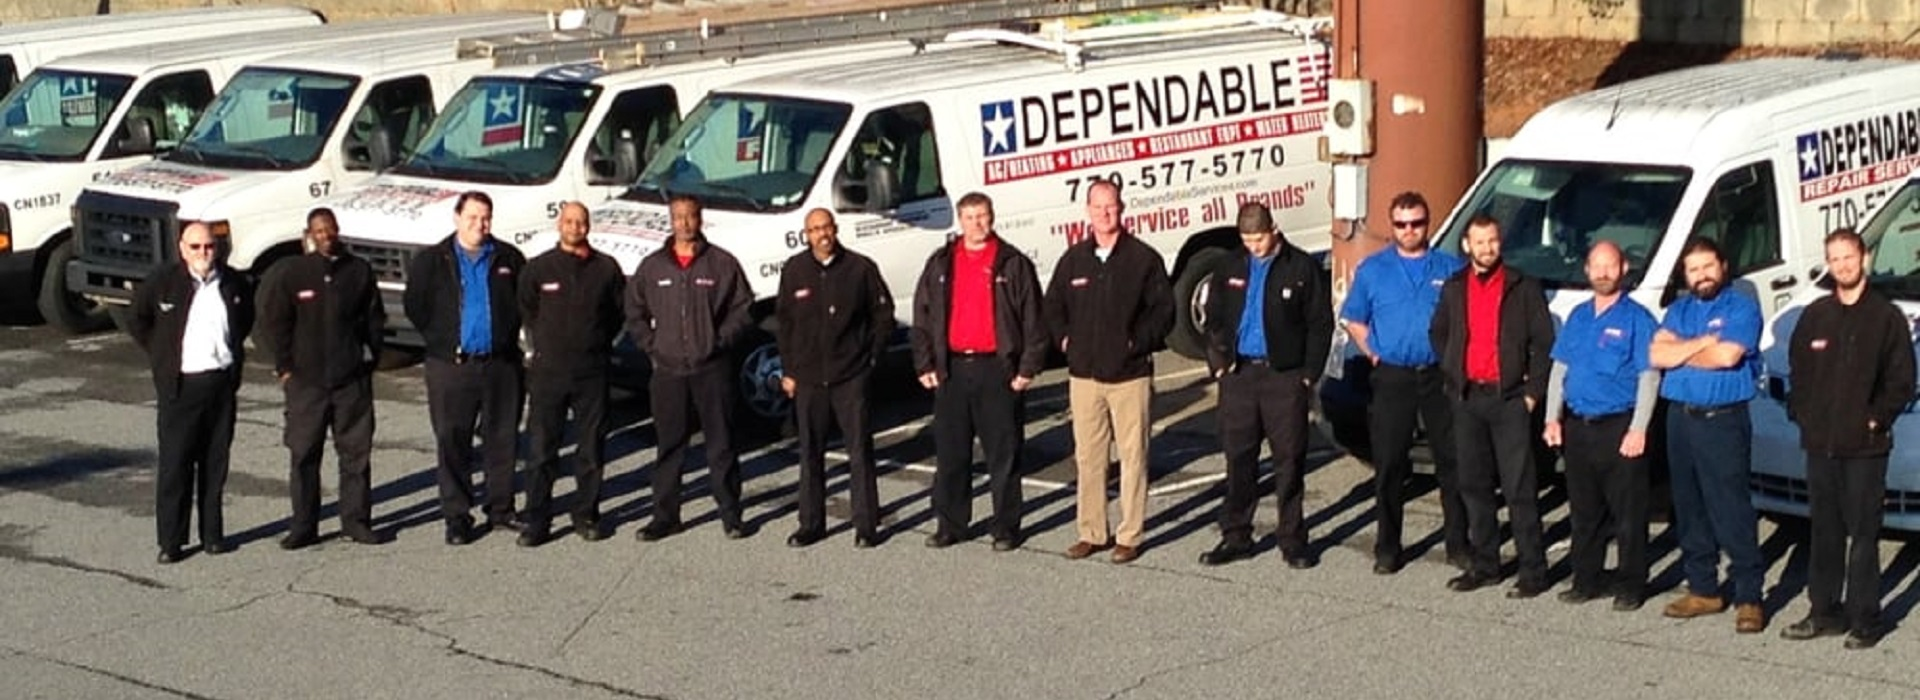 Dependable Arrpliance Repair Suwanee Staff